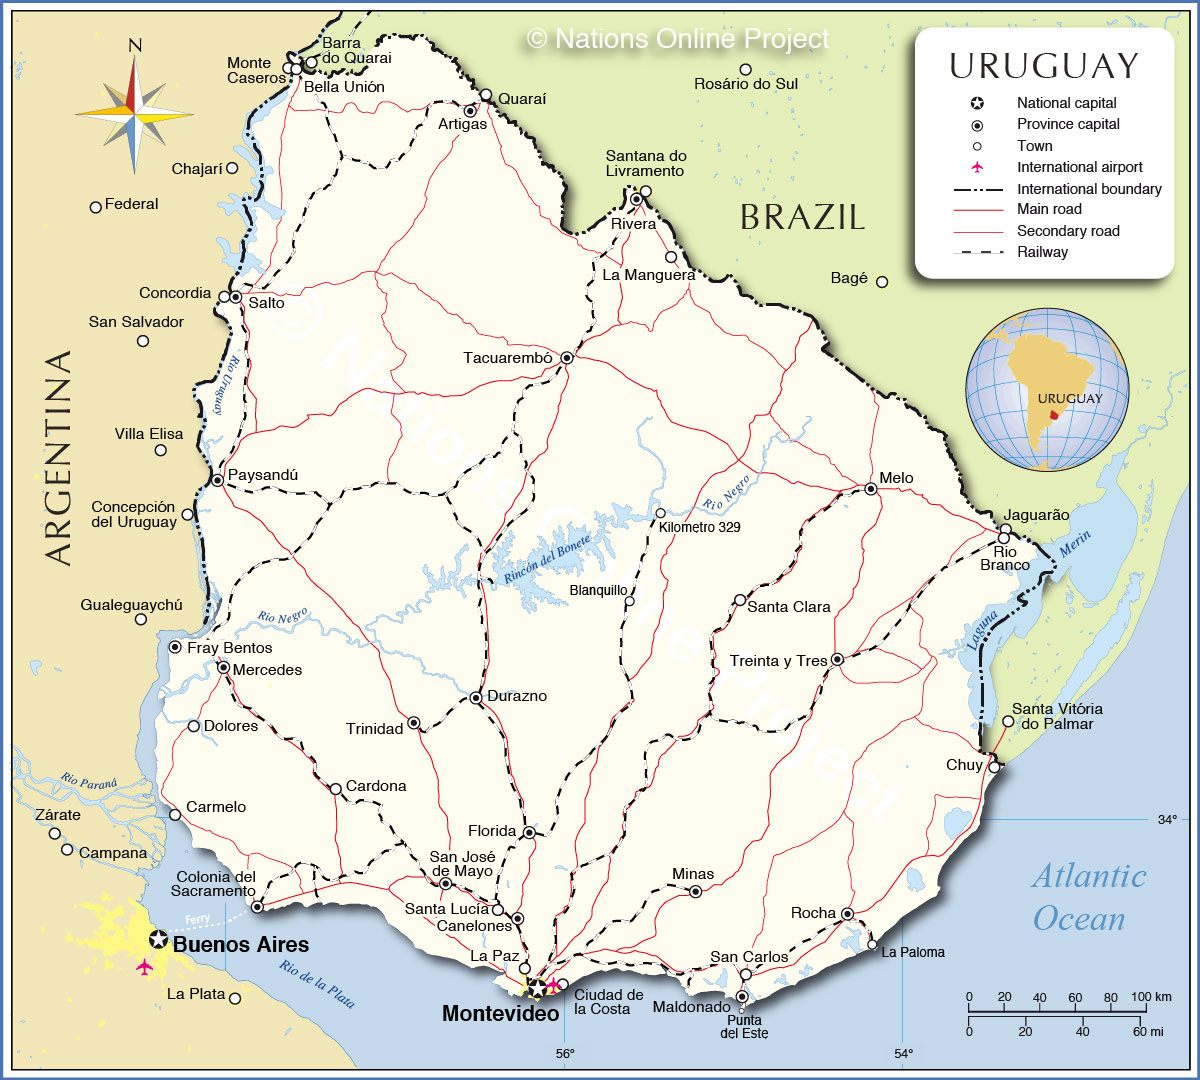 Detailed Map of Uruguay Nations Online Project